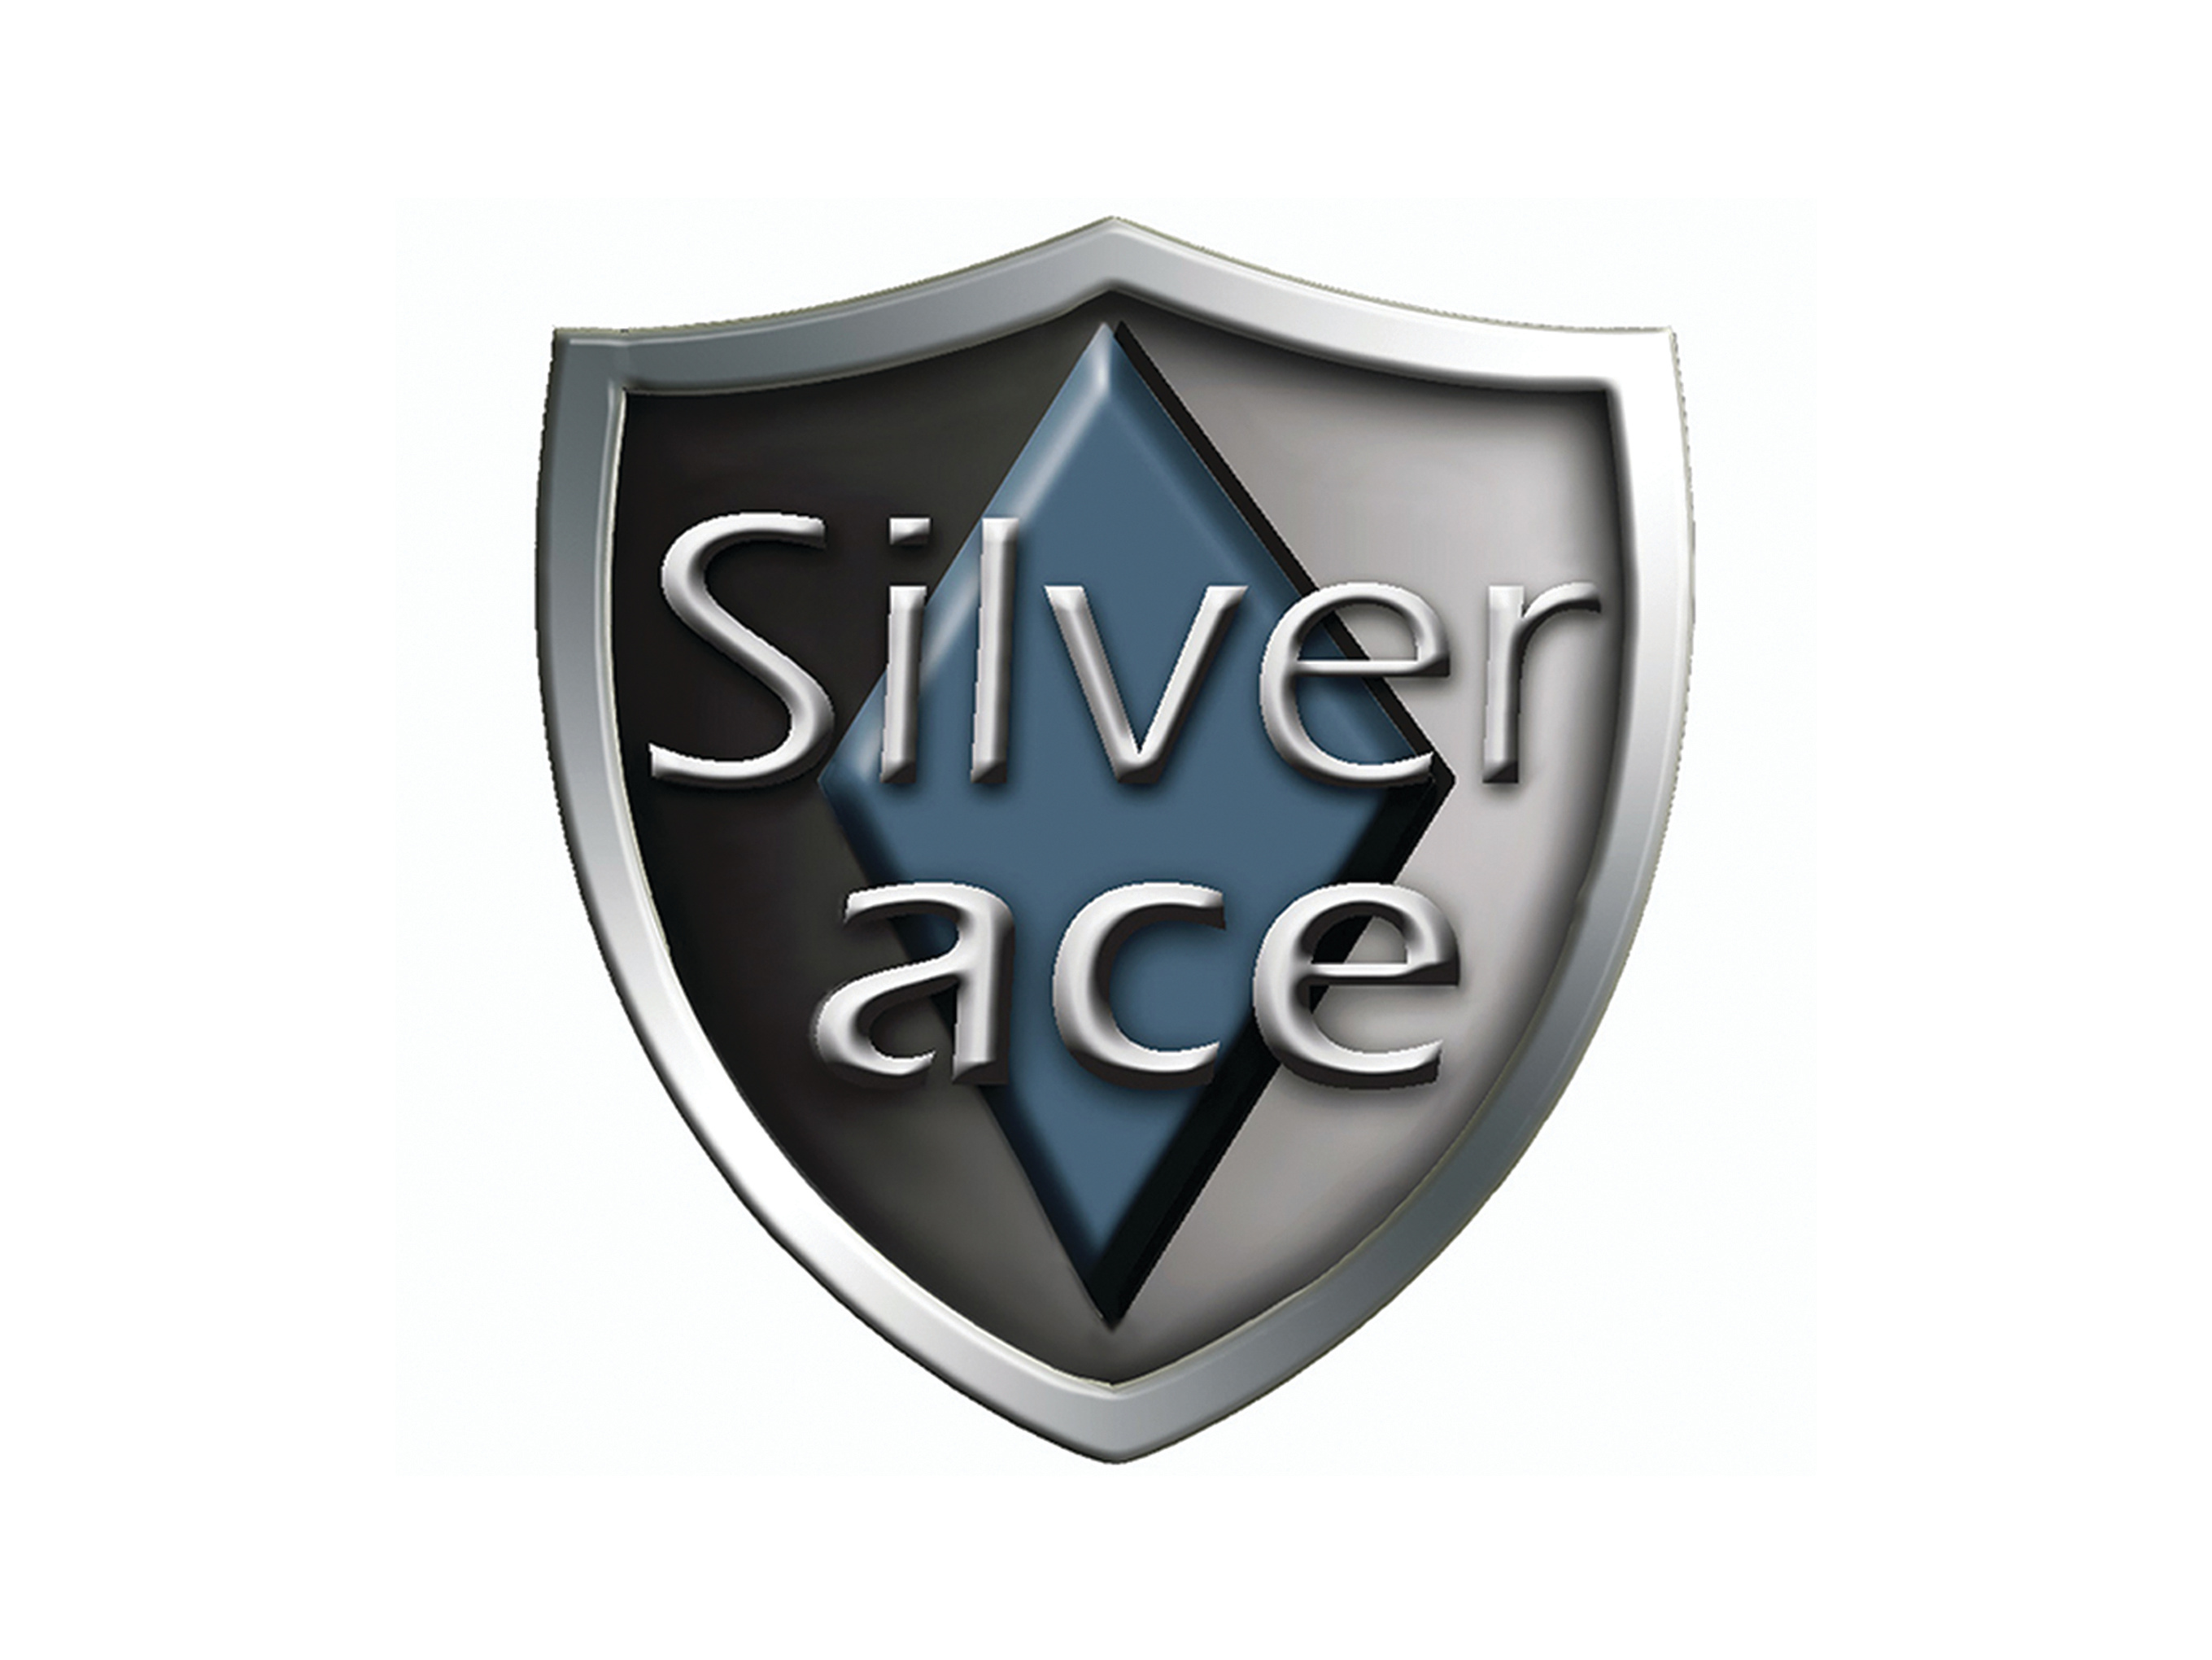 03. SILVERACE FRANCHISING